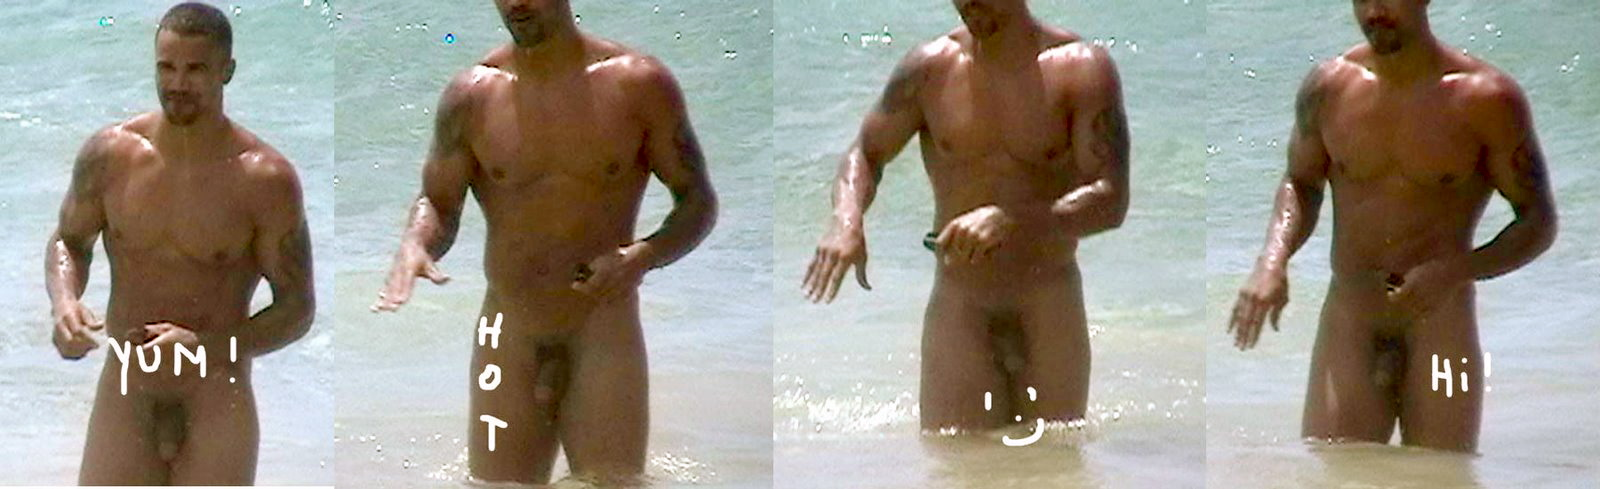 We had totally forgotten about these full frontal nude shots.